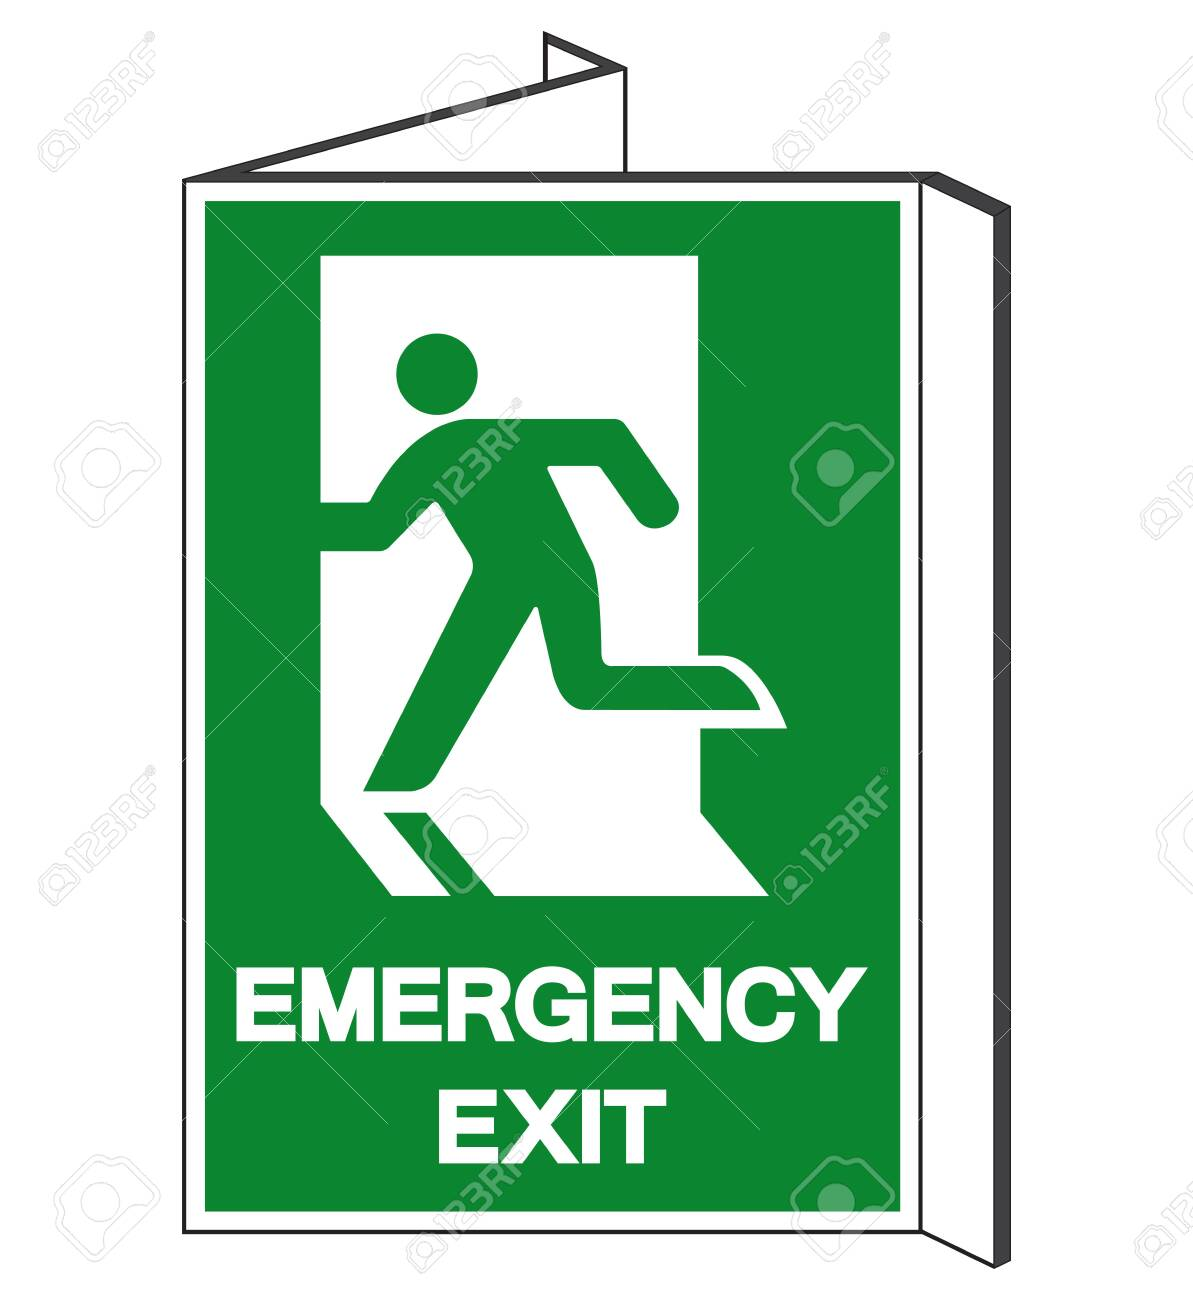 Emergency Exit Symbol Sign Vector Illustration Isolate On White 1193x1300